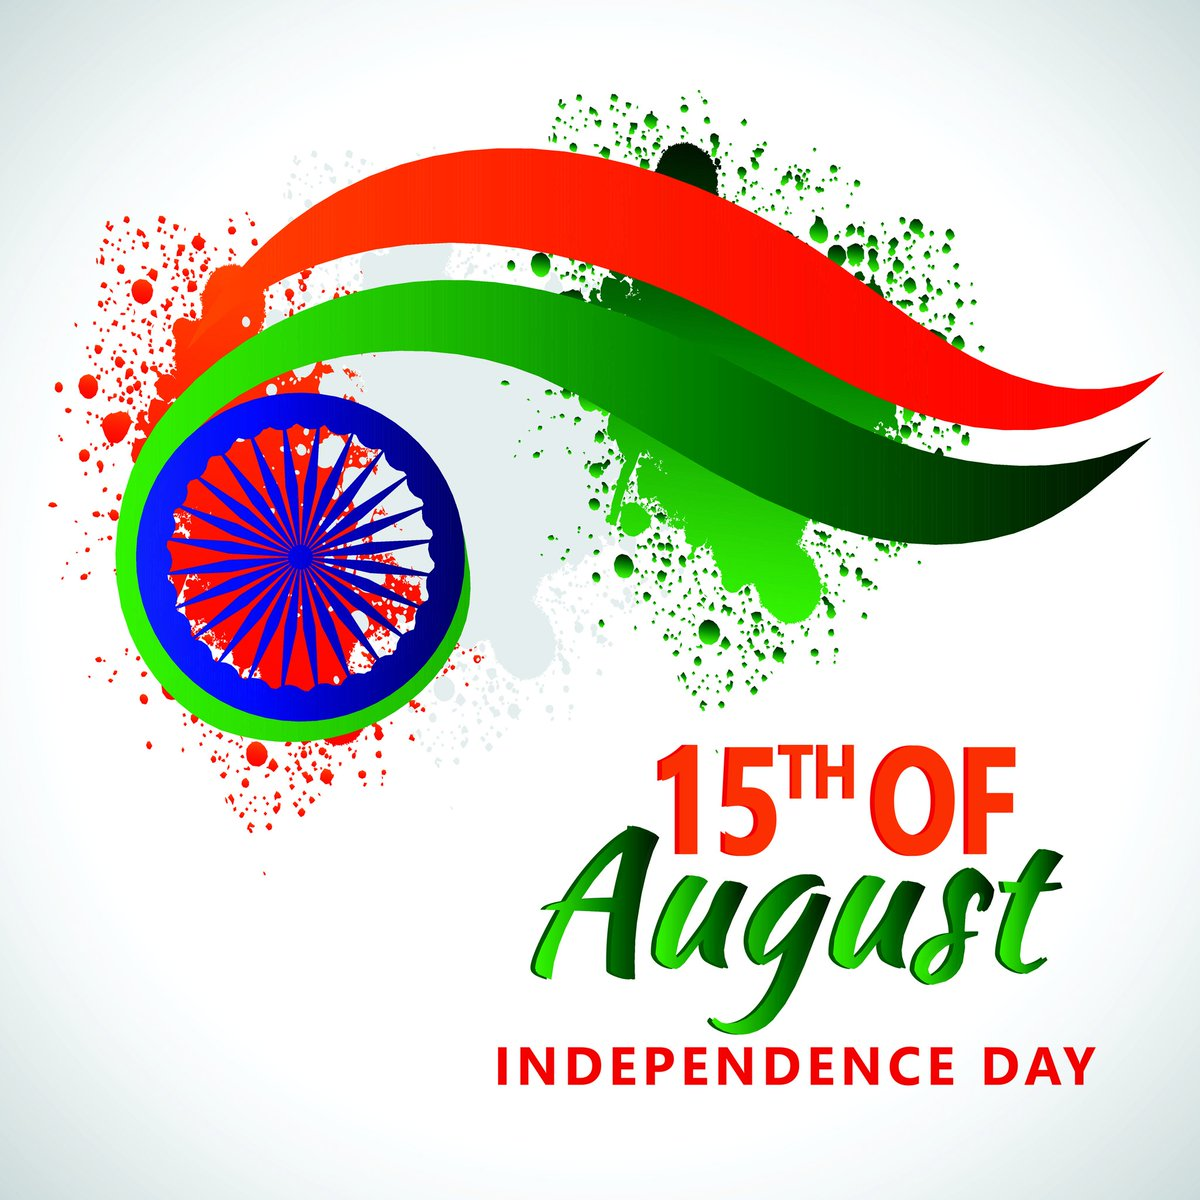 Dinesh Shahra On Twitter Independence Day Greetings To All Indians